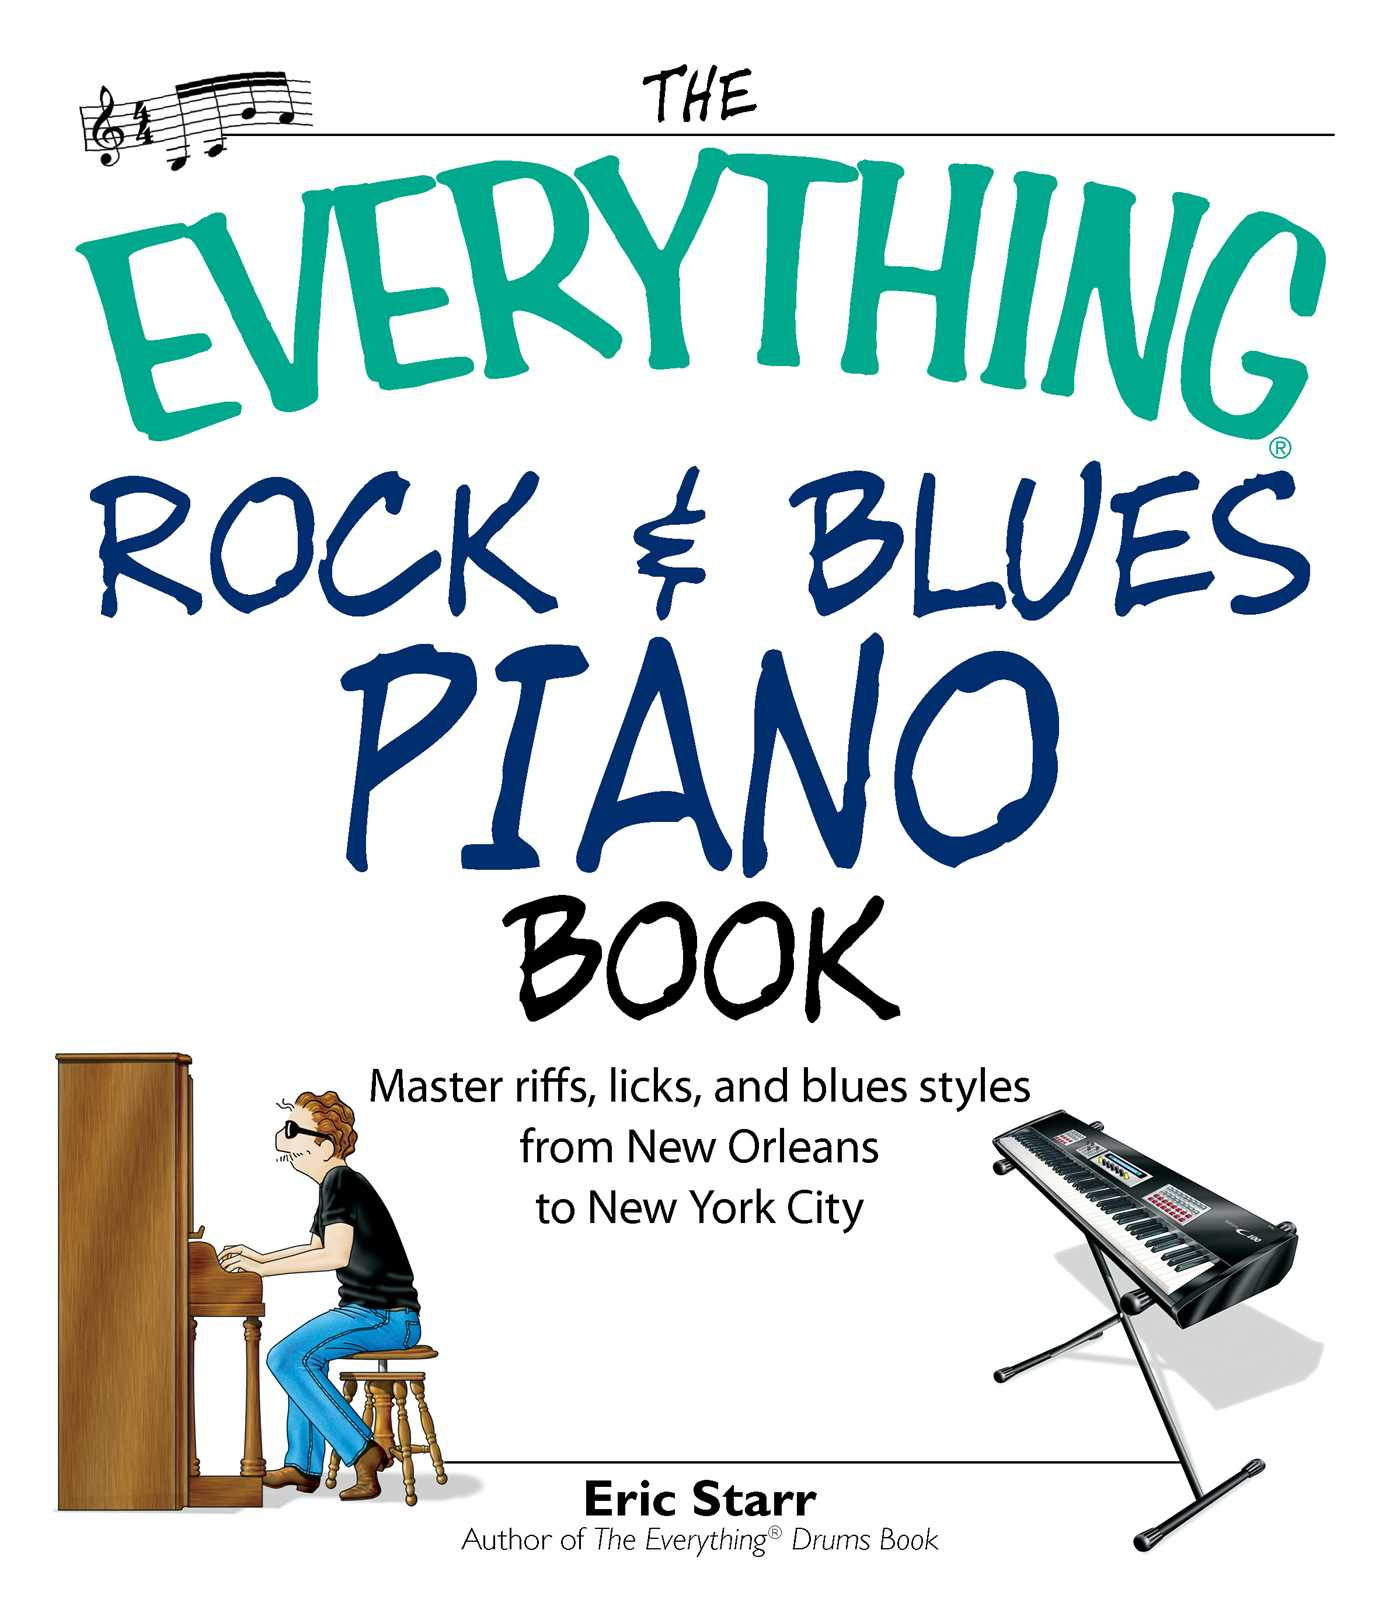 Book Cover Image (jpg): The Everything Rock & Blues Piano Book. eBook  9781605502595